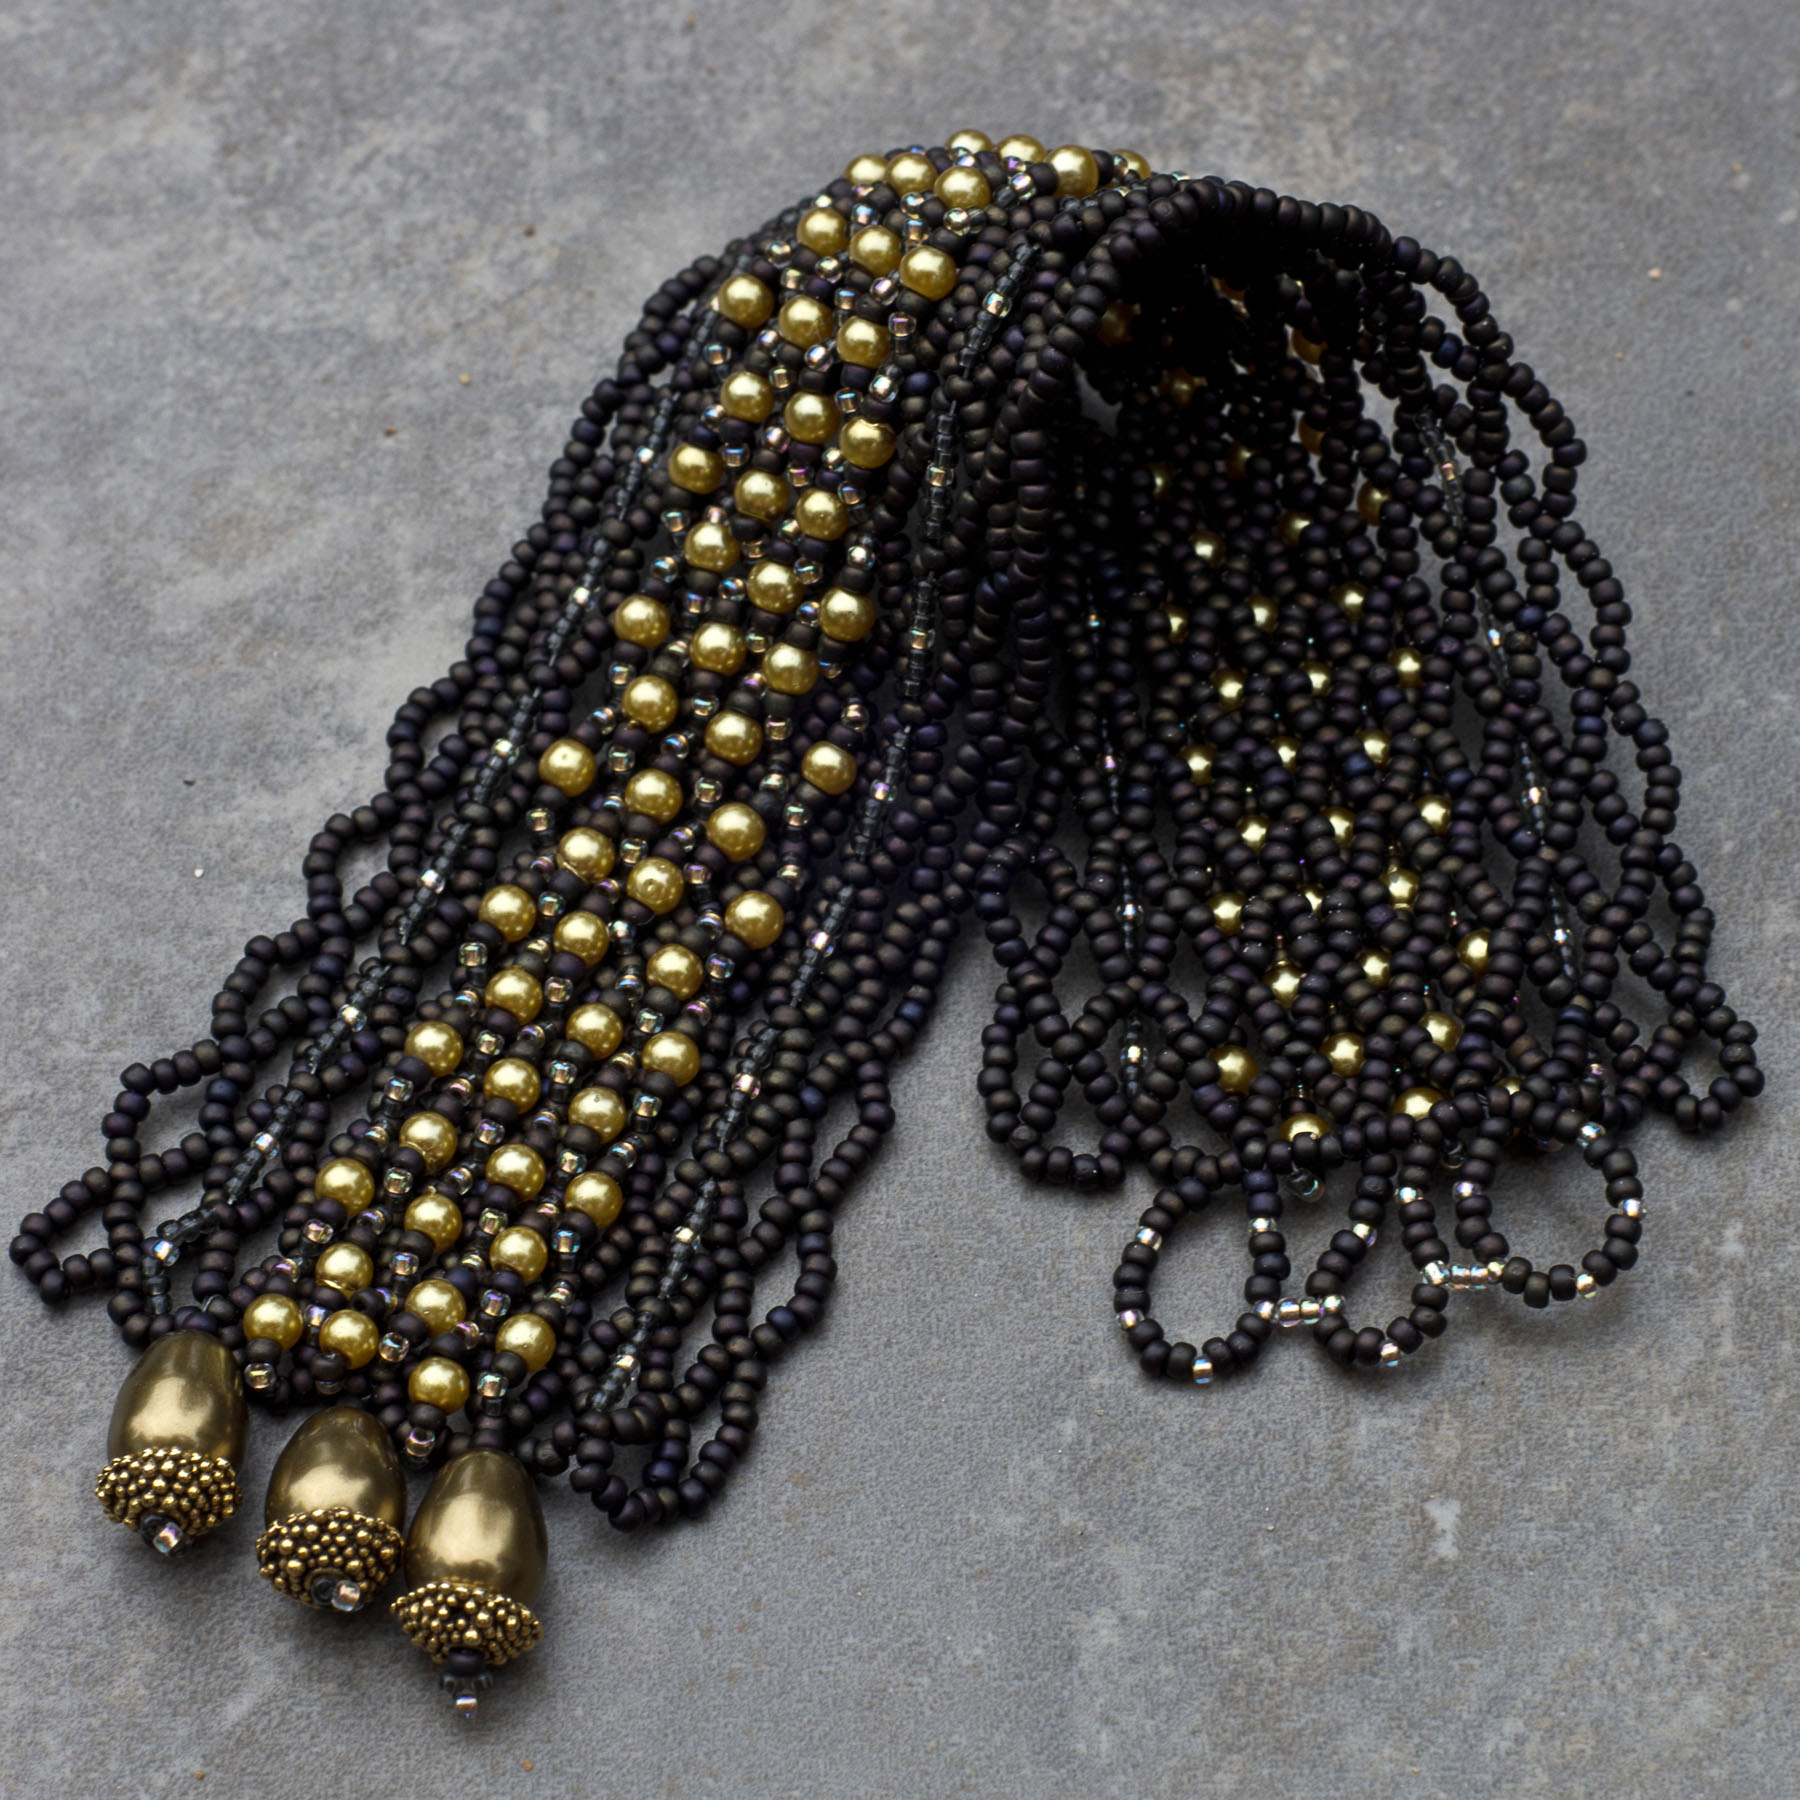 FILET AUX PERLES - Or et brun | 135 $